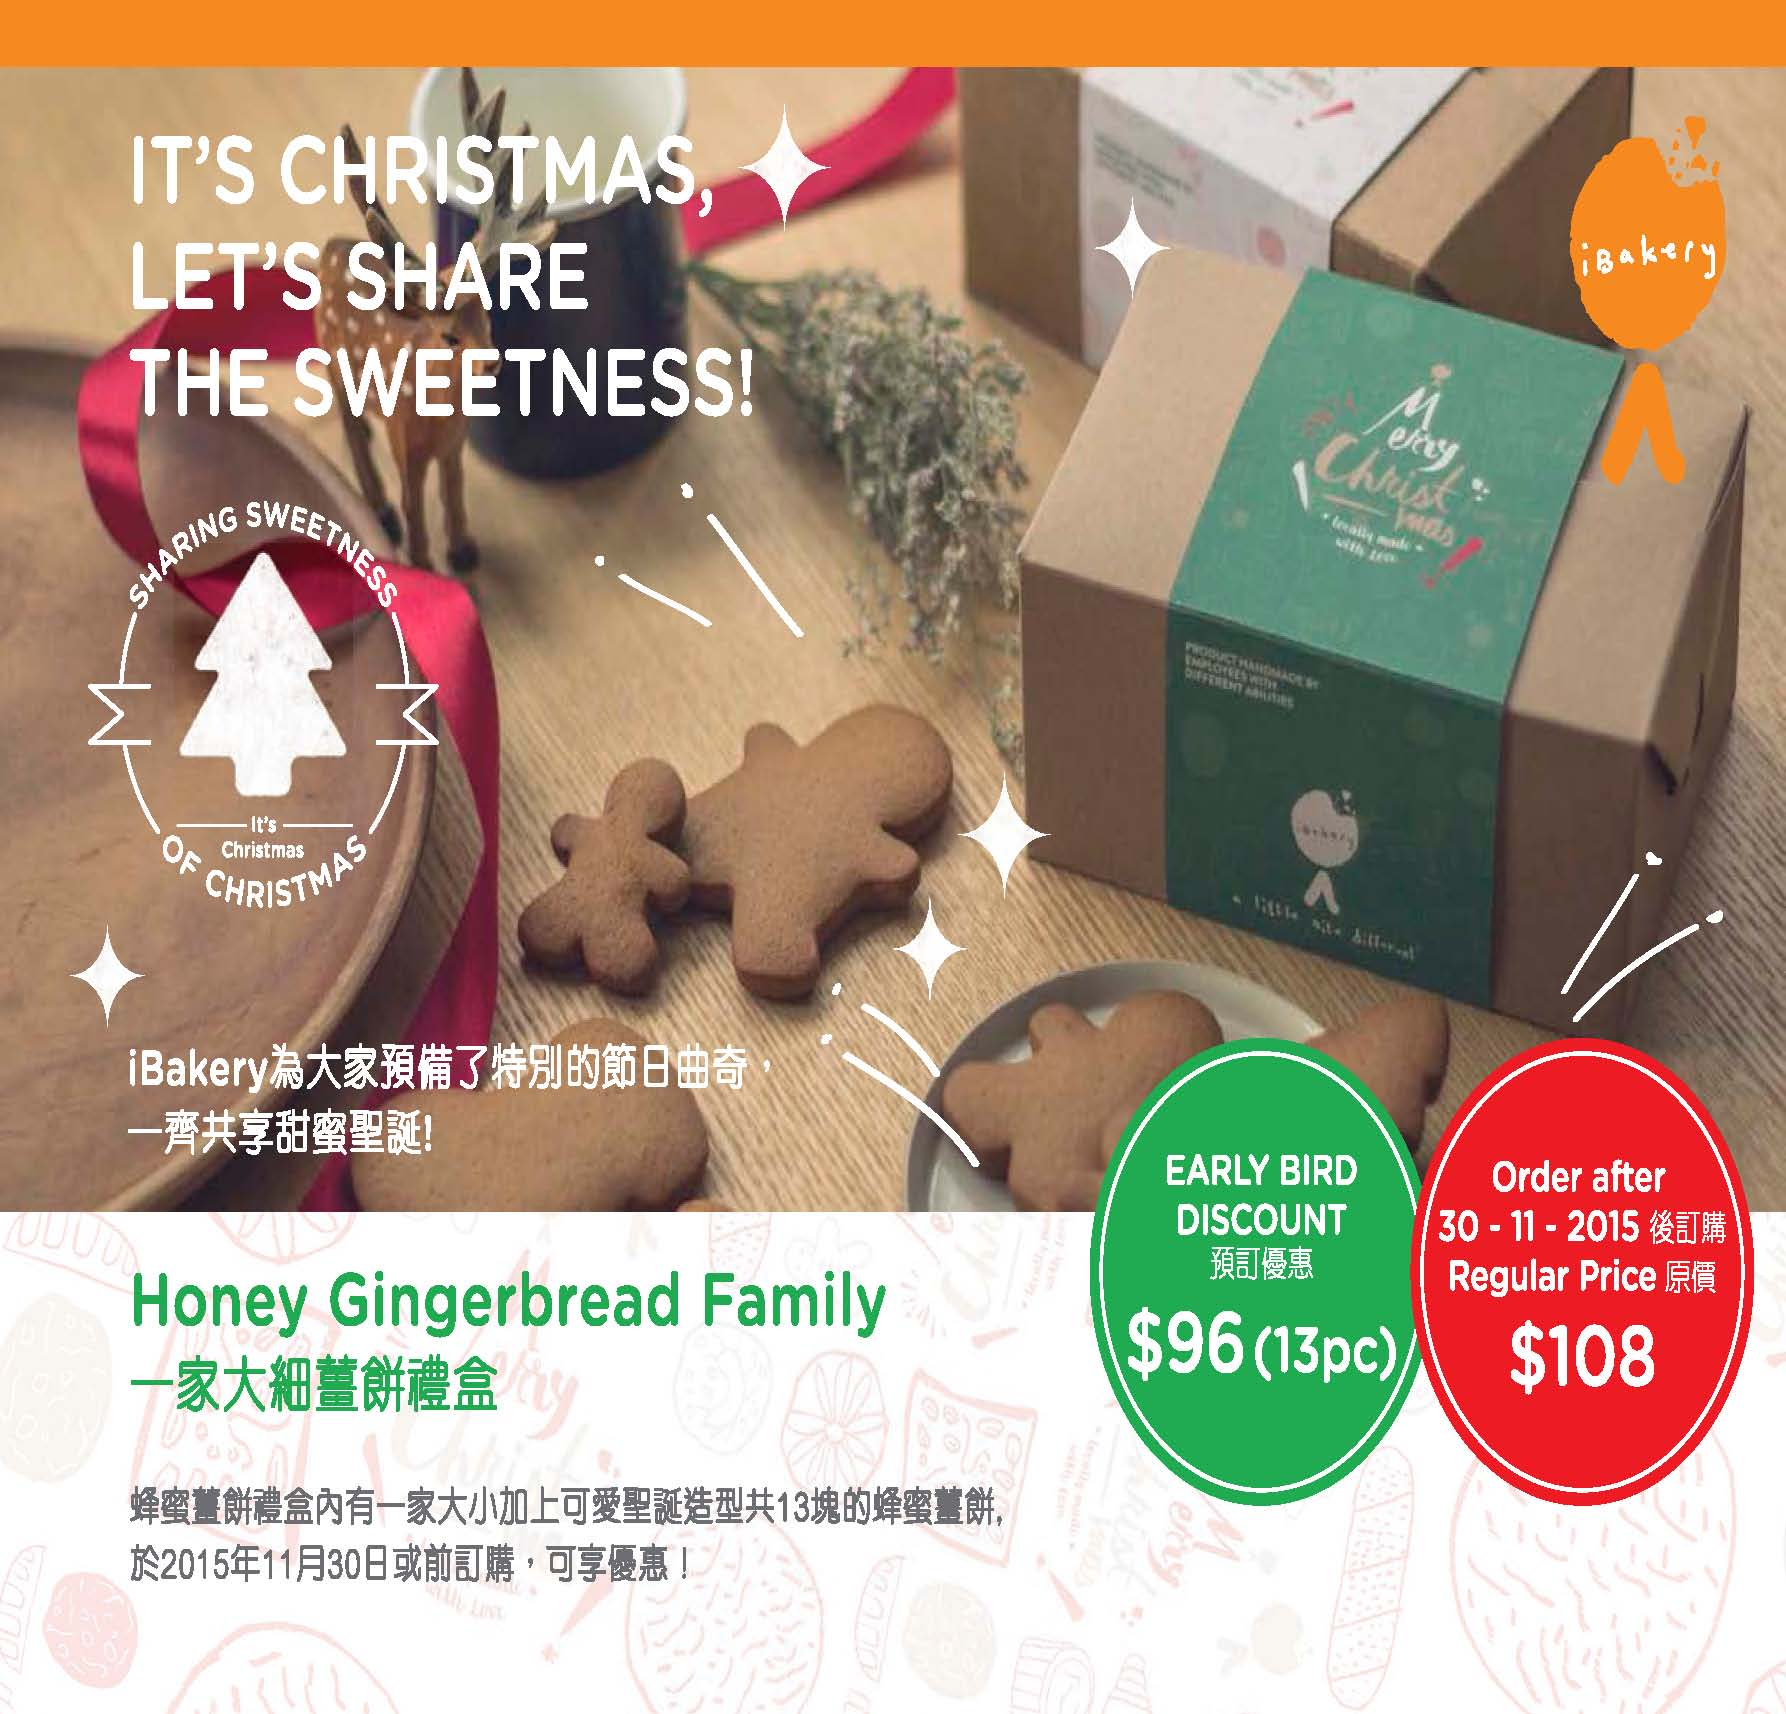 Honey Gingerbread Family: Early Bird Discount HK$96 (13 pieces); After 30 Nov 2015 (HK$108)